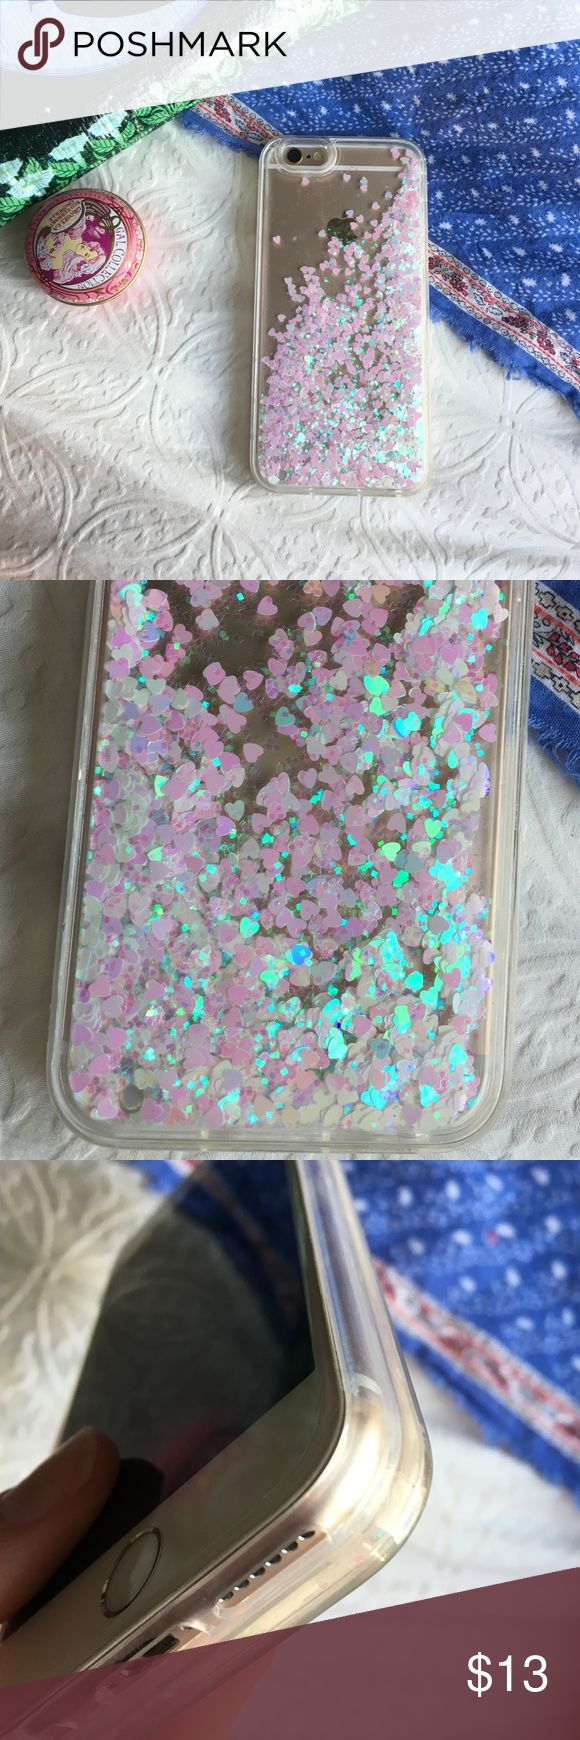 glitter phone case ✨brand new ✨pink sparkle water case ✨for iphone 6/6s ✨protects back of phone from scratches ✨not from listed brand-only for exposure ✨no lowballing please ✨ships next day excluding sundays Make an offer!  tags: sparkles, cotton candy, turquoise, pretty, artsy, protective, otter box, speck, hearts, heart, brandy melville, urban outfitters, violet, tumblr, cool, apple, gift, pearlescent, holographic, translucent, transparent, clear, Brandy Melville Accessories Phone Cases